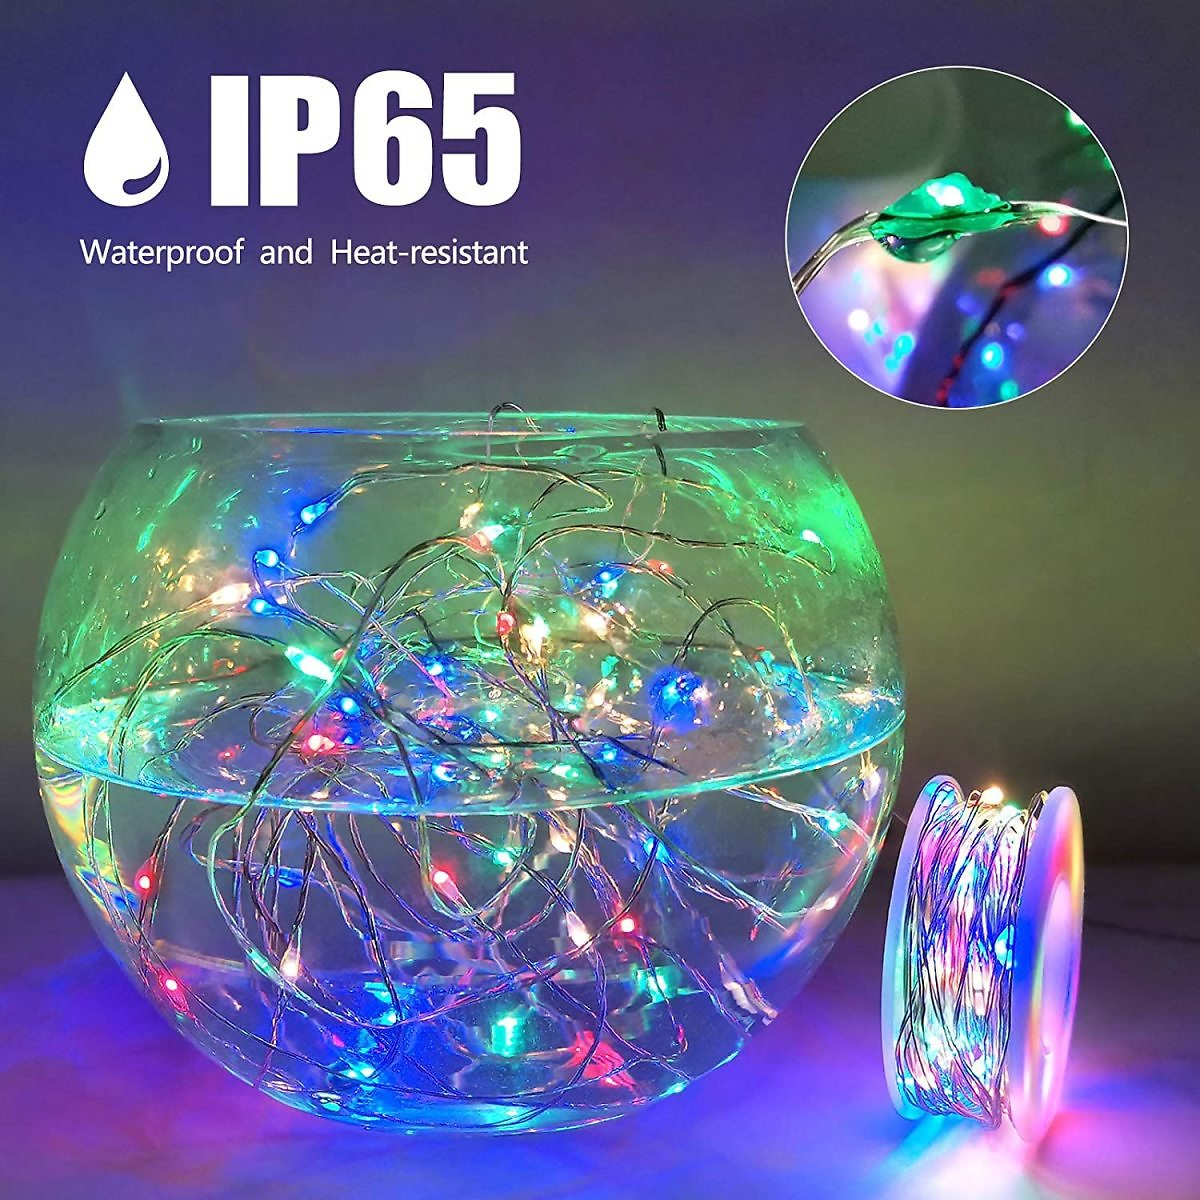 Save On 120 LED USB String Lights with Promo Code On Amazon.com